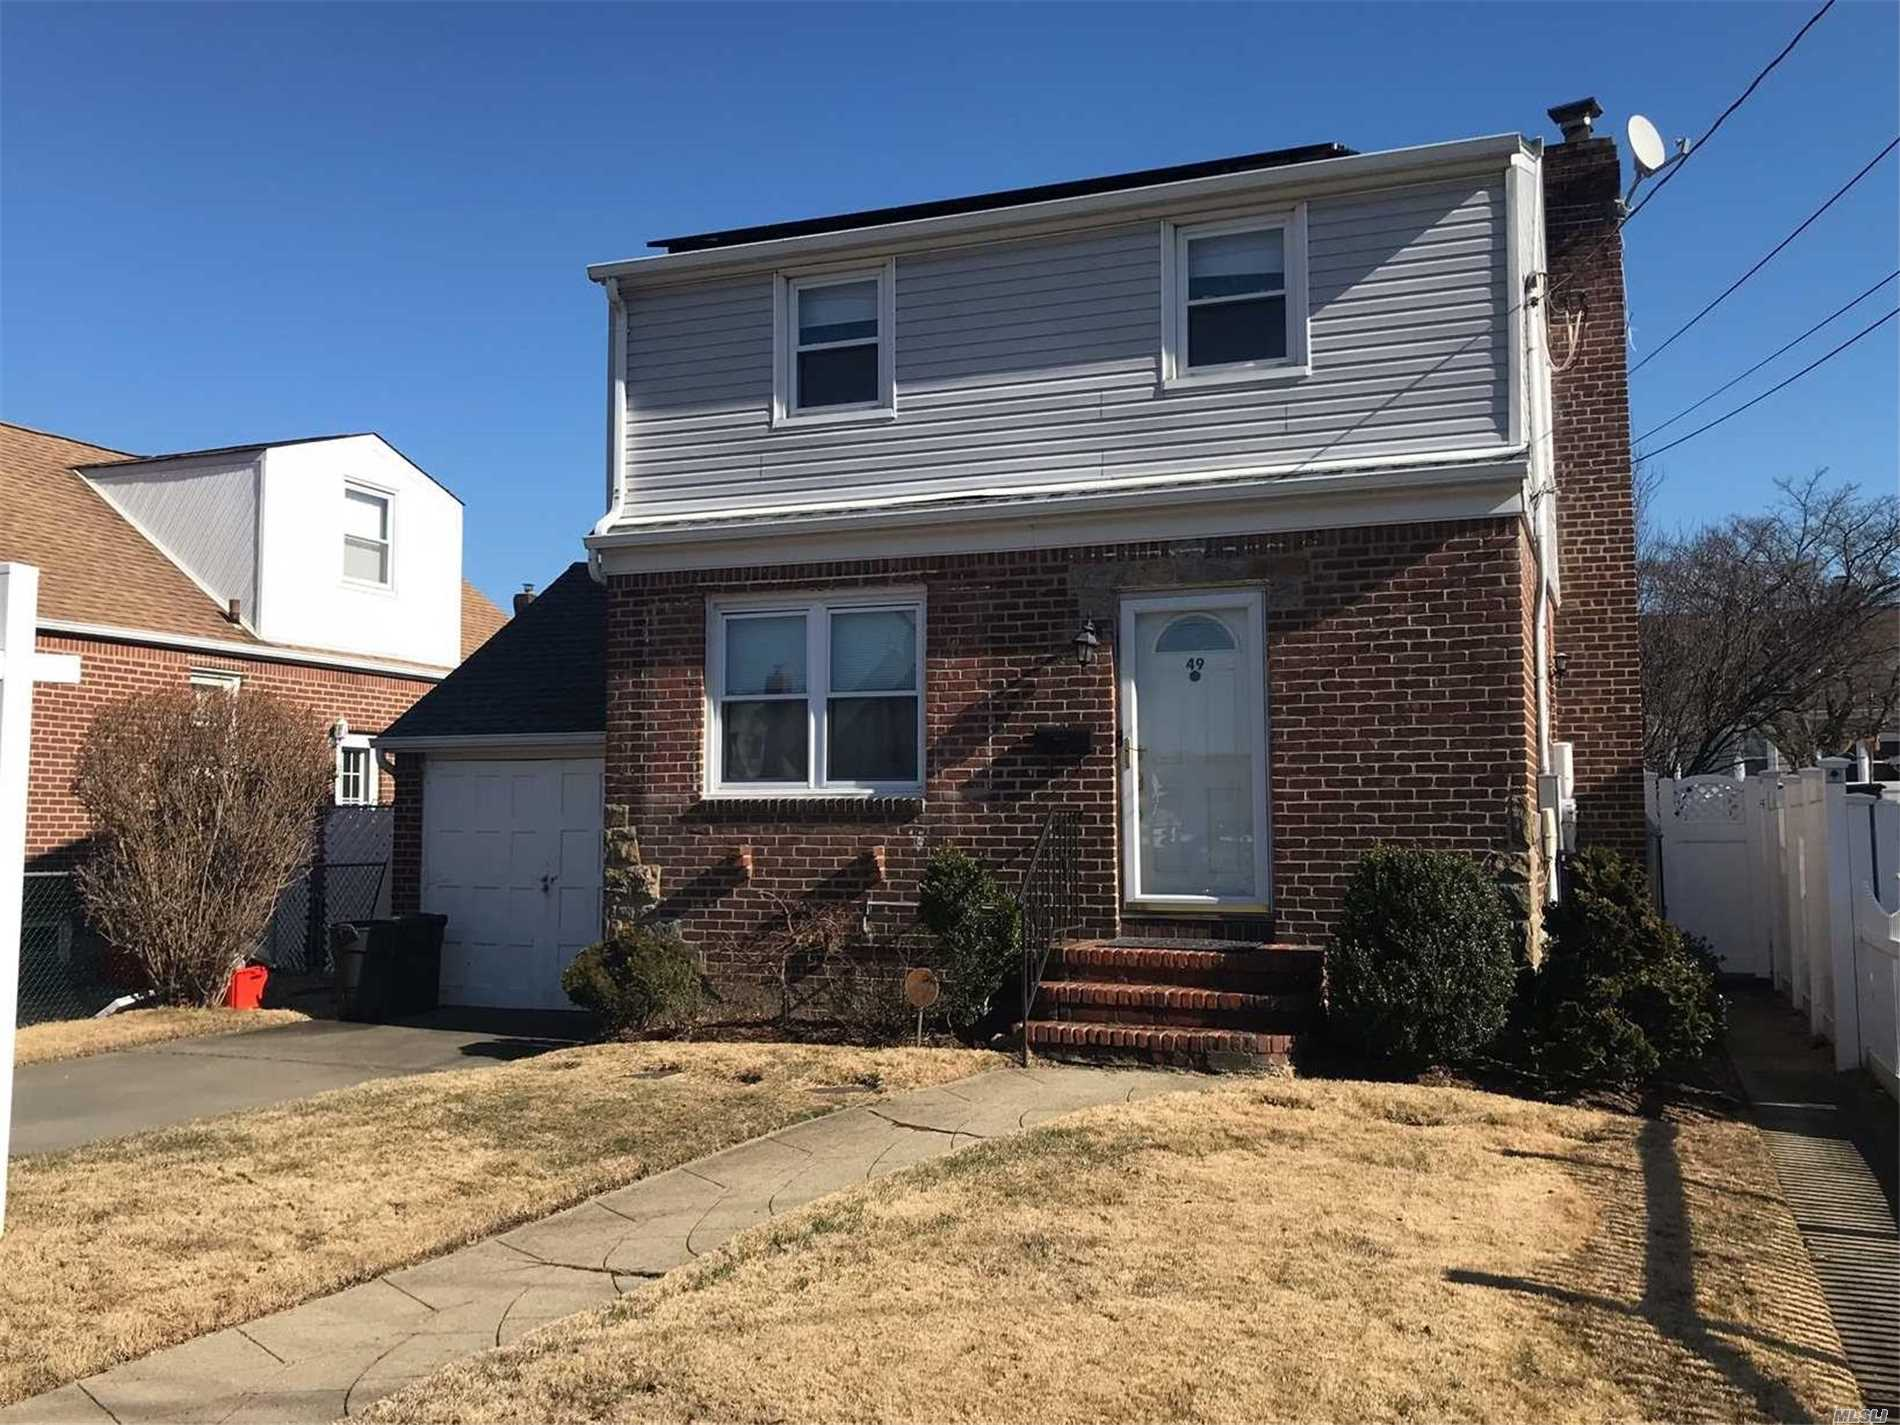 Light And Bright Cape With Full Basement. New Oil Tank, New Hot Water Heater, New Basement Windows, Close To Transportation, Parks And Shopping. Hardwood Floors Throuhout. Slider Glass Doors To Large Private Backyard. One Car Garage With Parking In Driveway.